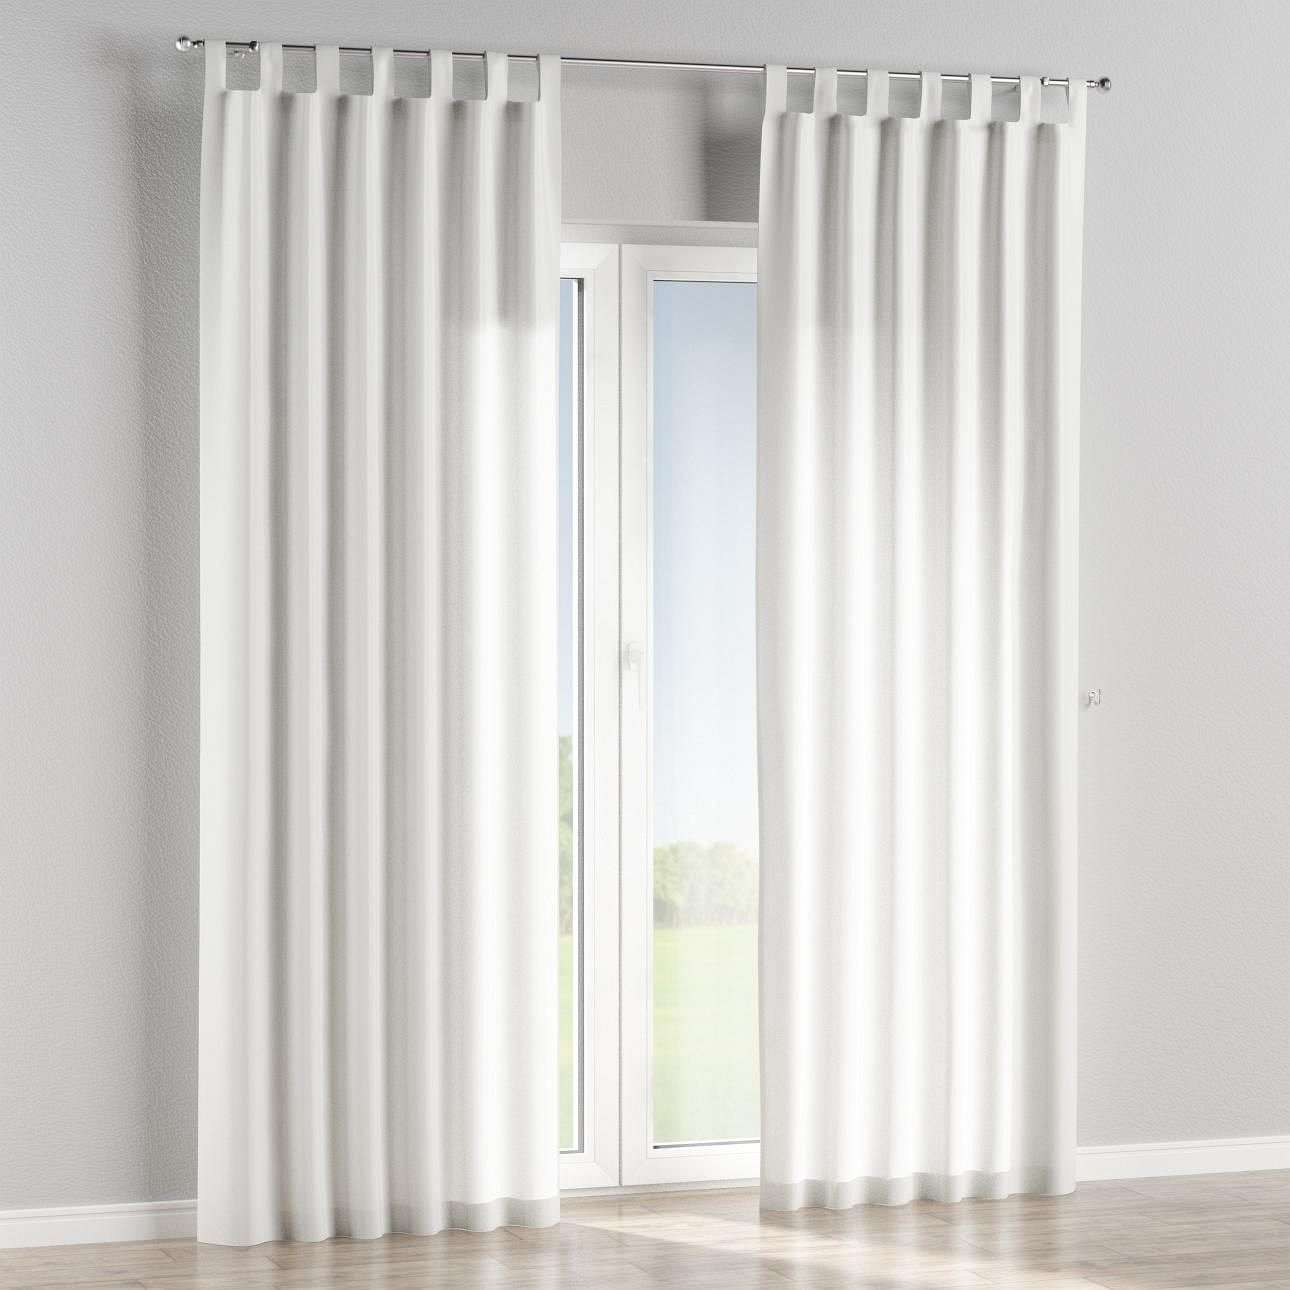 Tab top curtains in collection Milano, fabric: 150-22